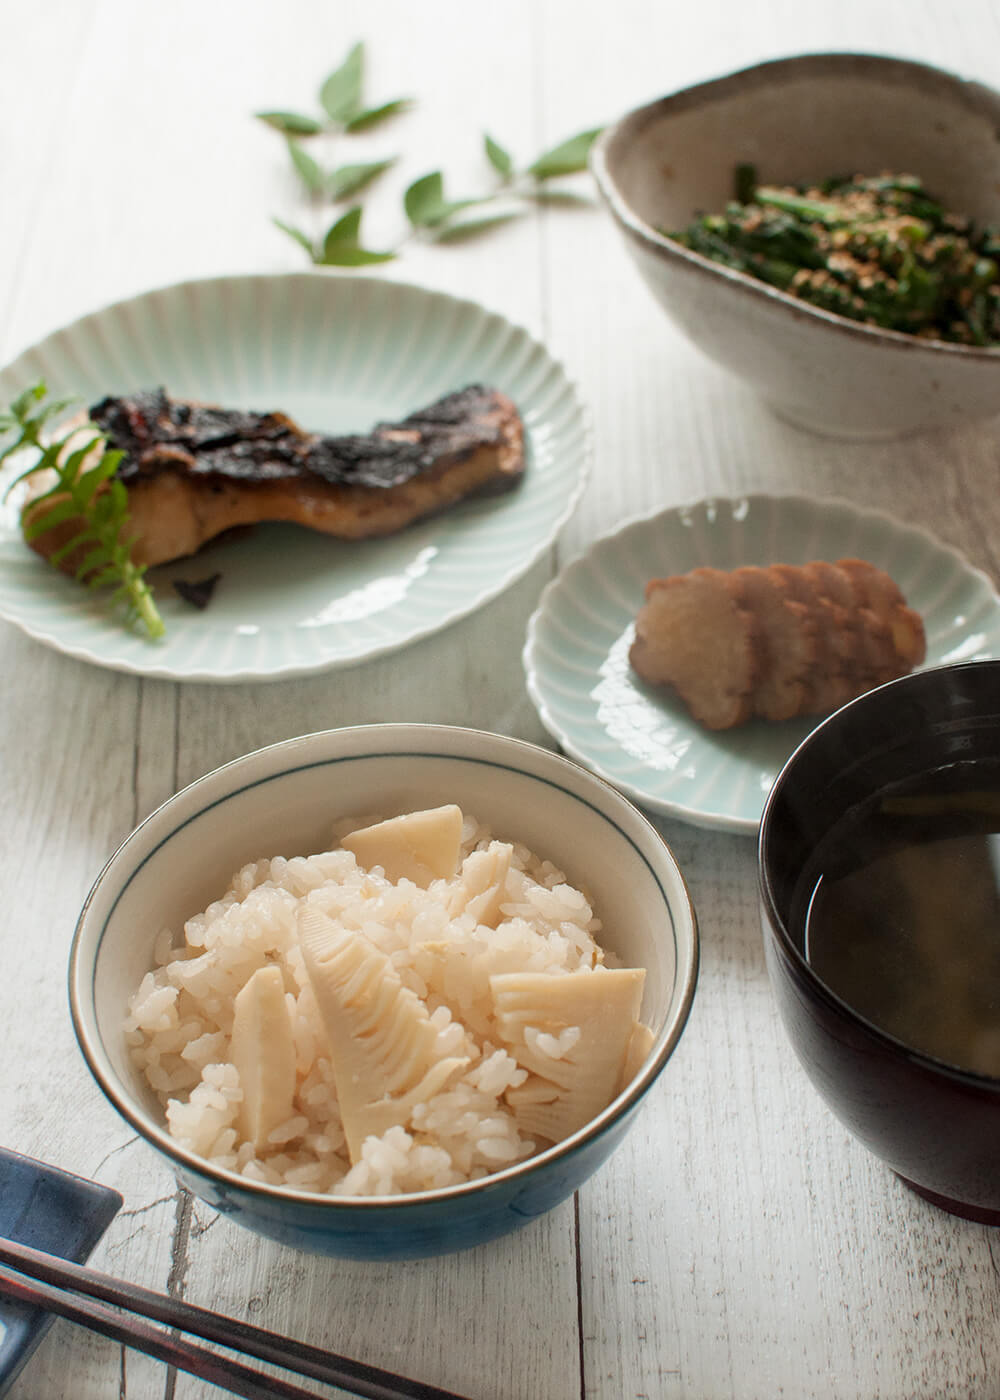 You can enjoy the distinct flavour of bamboo shoots in this dish, Rice with Bamboo Shoots (Takenoko Gohan). To preserve the delicate flavour of the bamboo shoots, I simply cook them with rice in a lightly flavoured dashi stock.